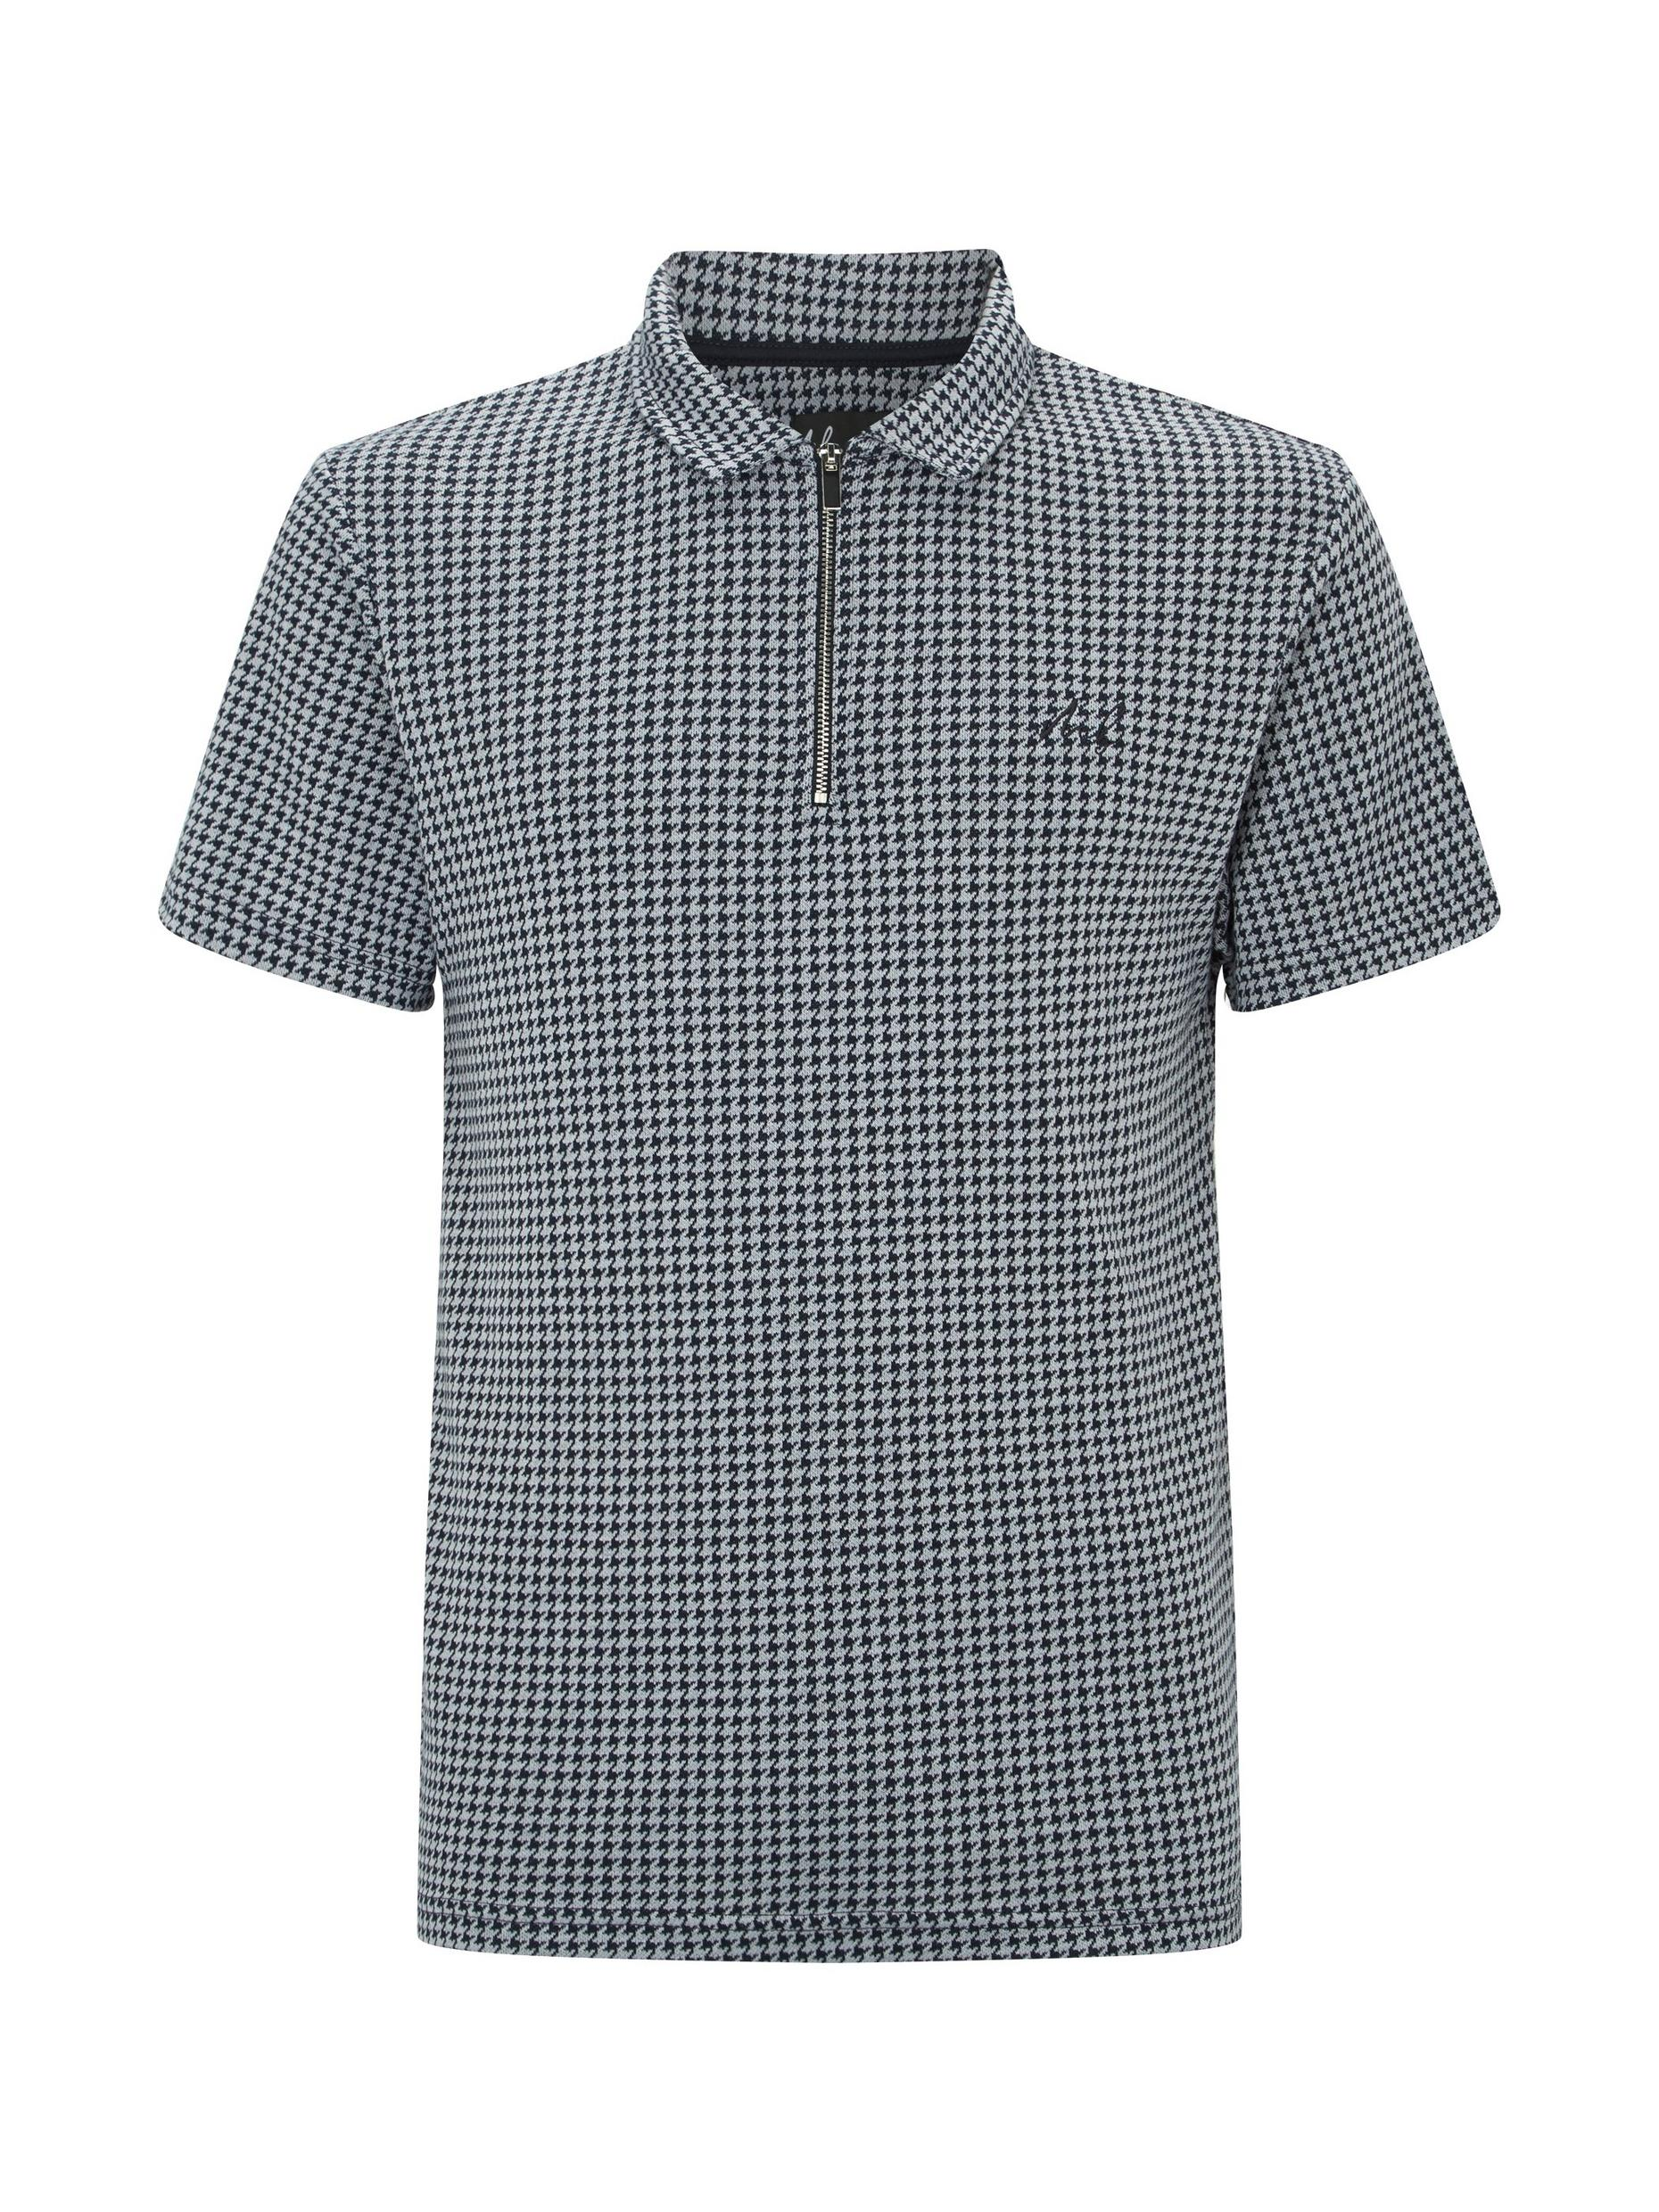 MB Collection Navy Puppytooth Polo